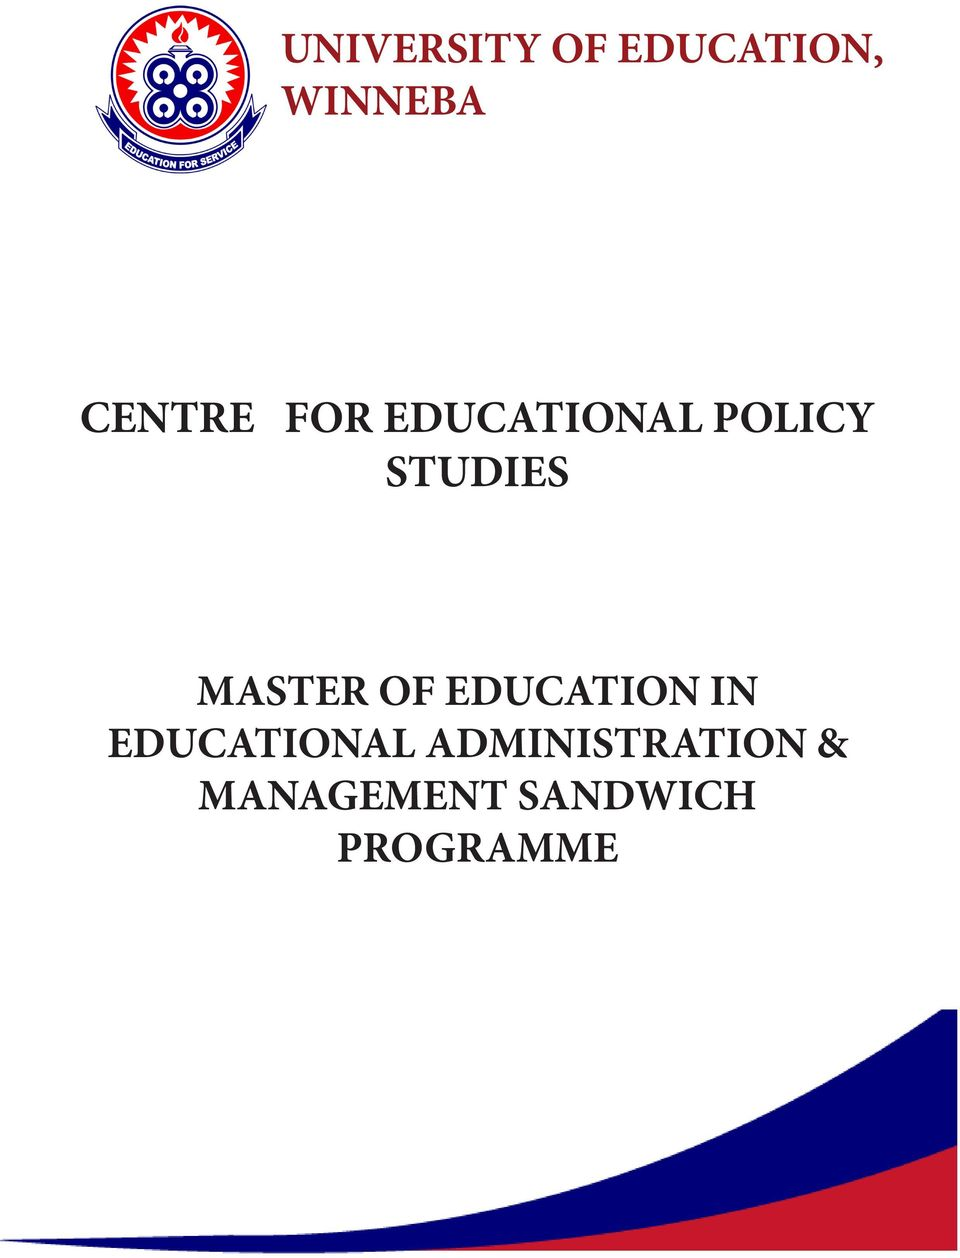 MASTER OF EDUCATION IN EDUCATIONAL